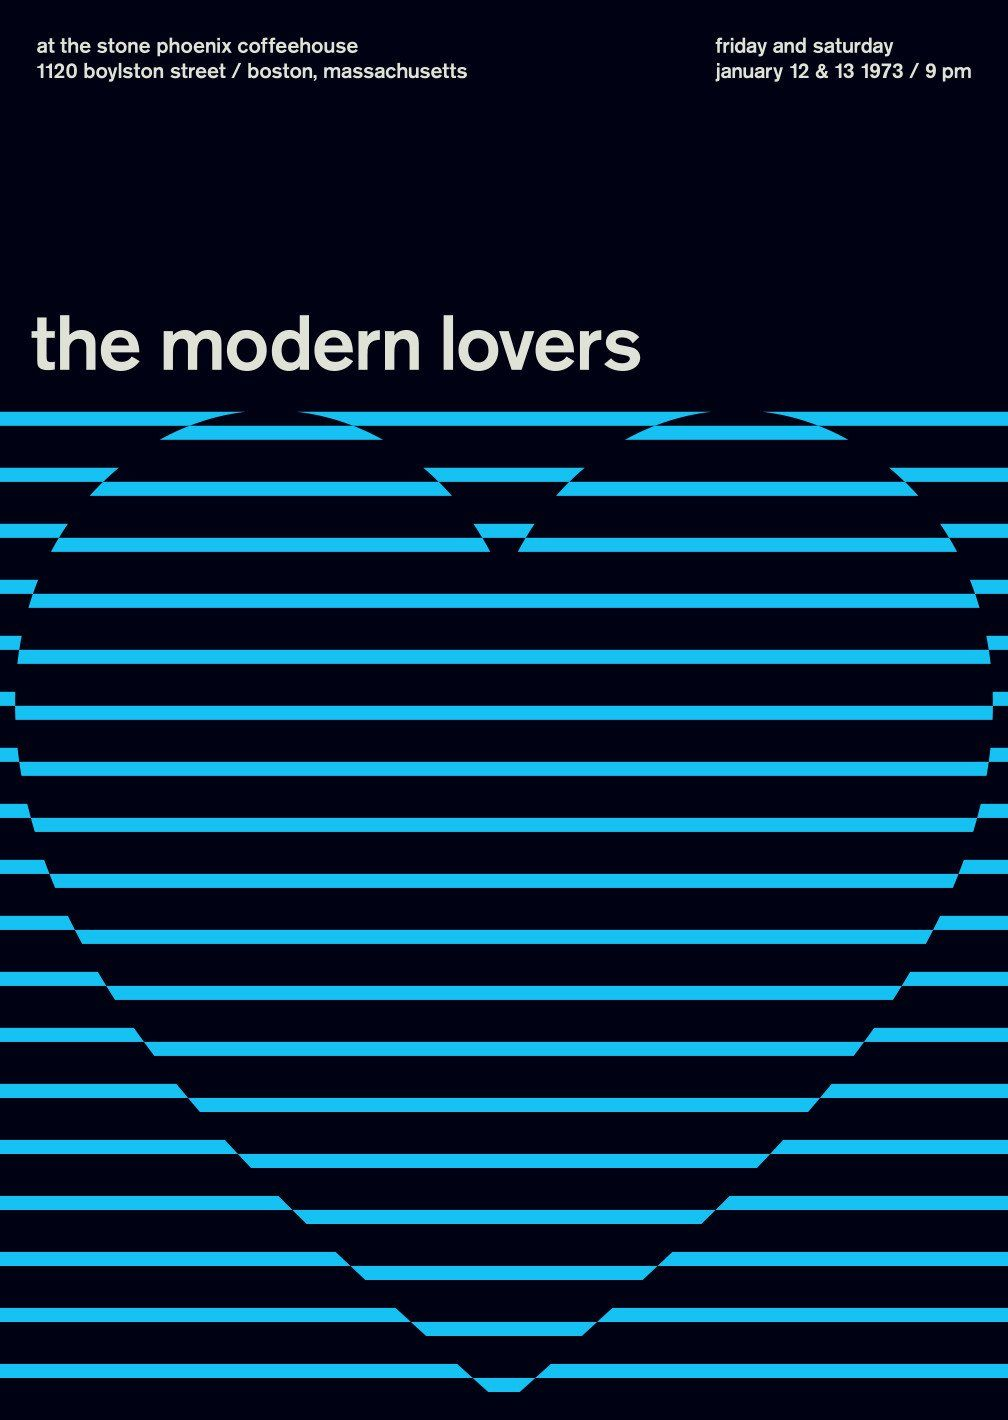 The Modern Lovers At The Stone Phoenix 1973 The Modern Lovers Concert Poster Design Typography Poster Design